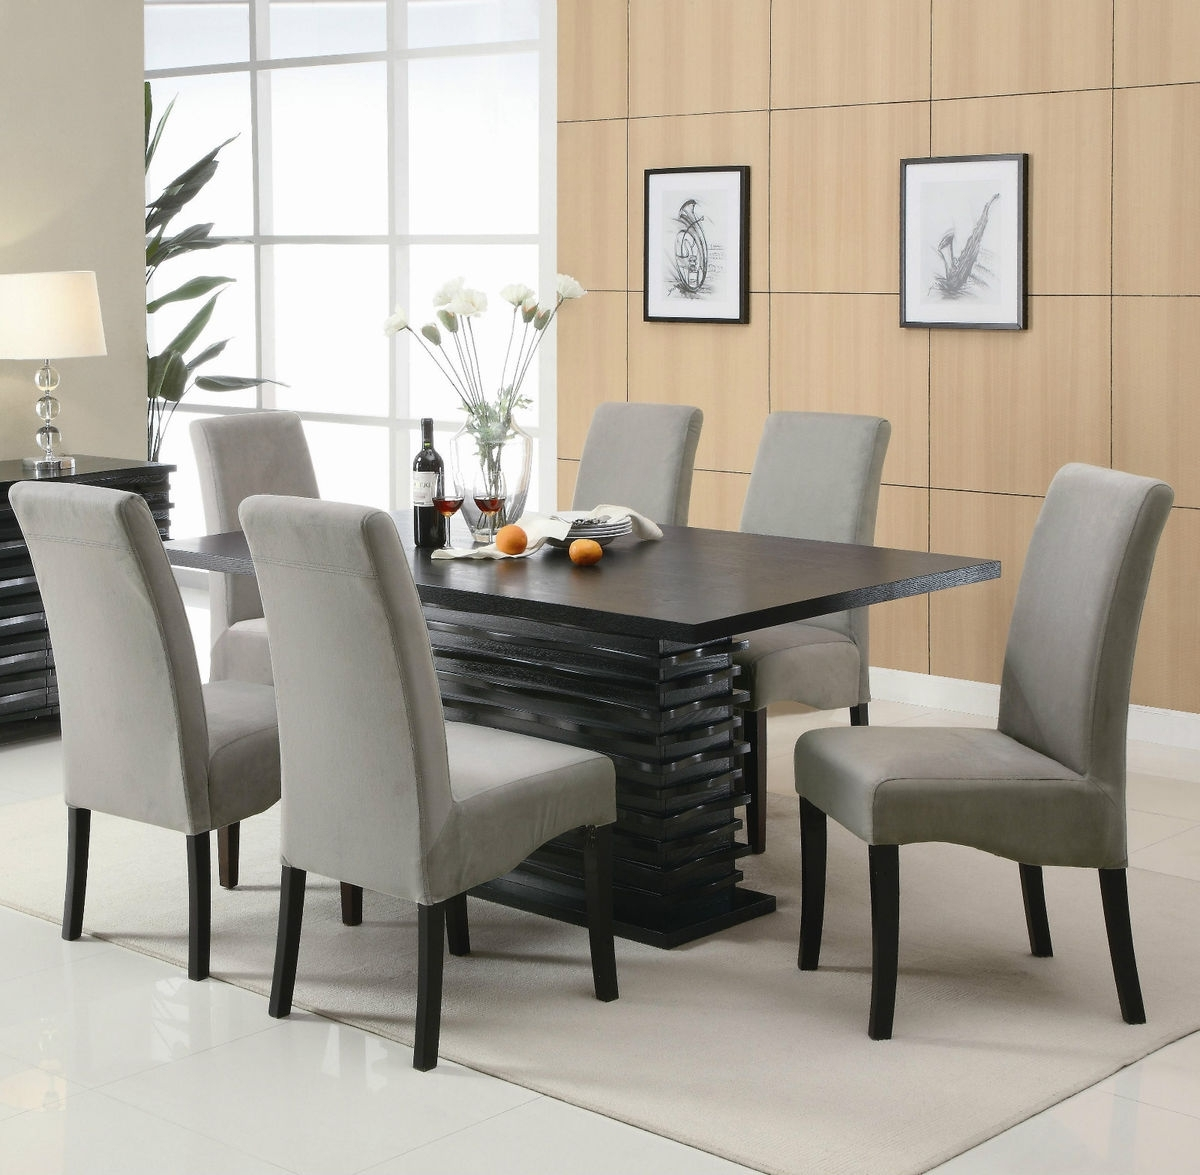 Decorating Modern Dining Room Chairs — Bluehawkboosters Home Design Within Current Modern Dining Suites (View 17 of 25)